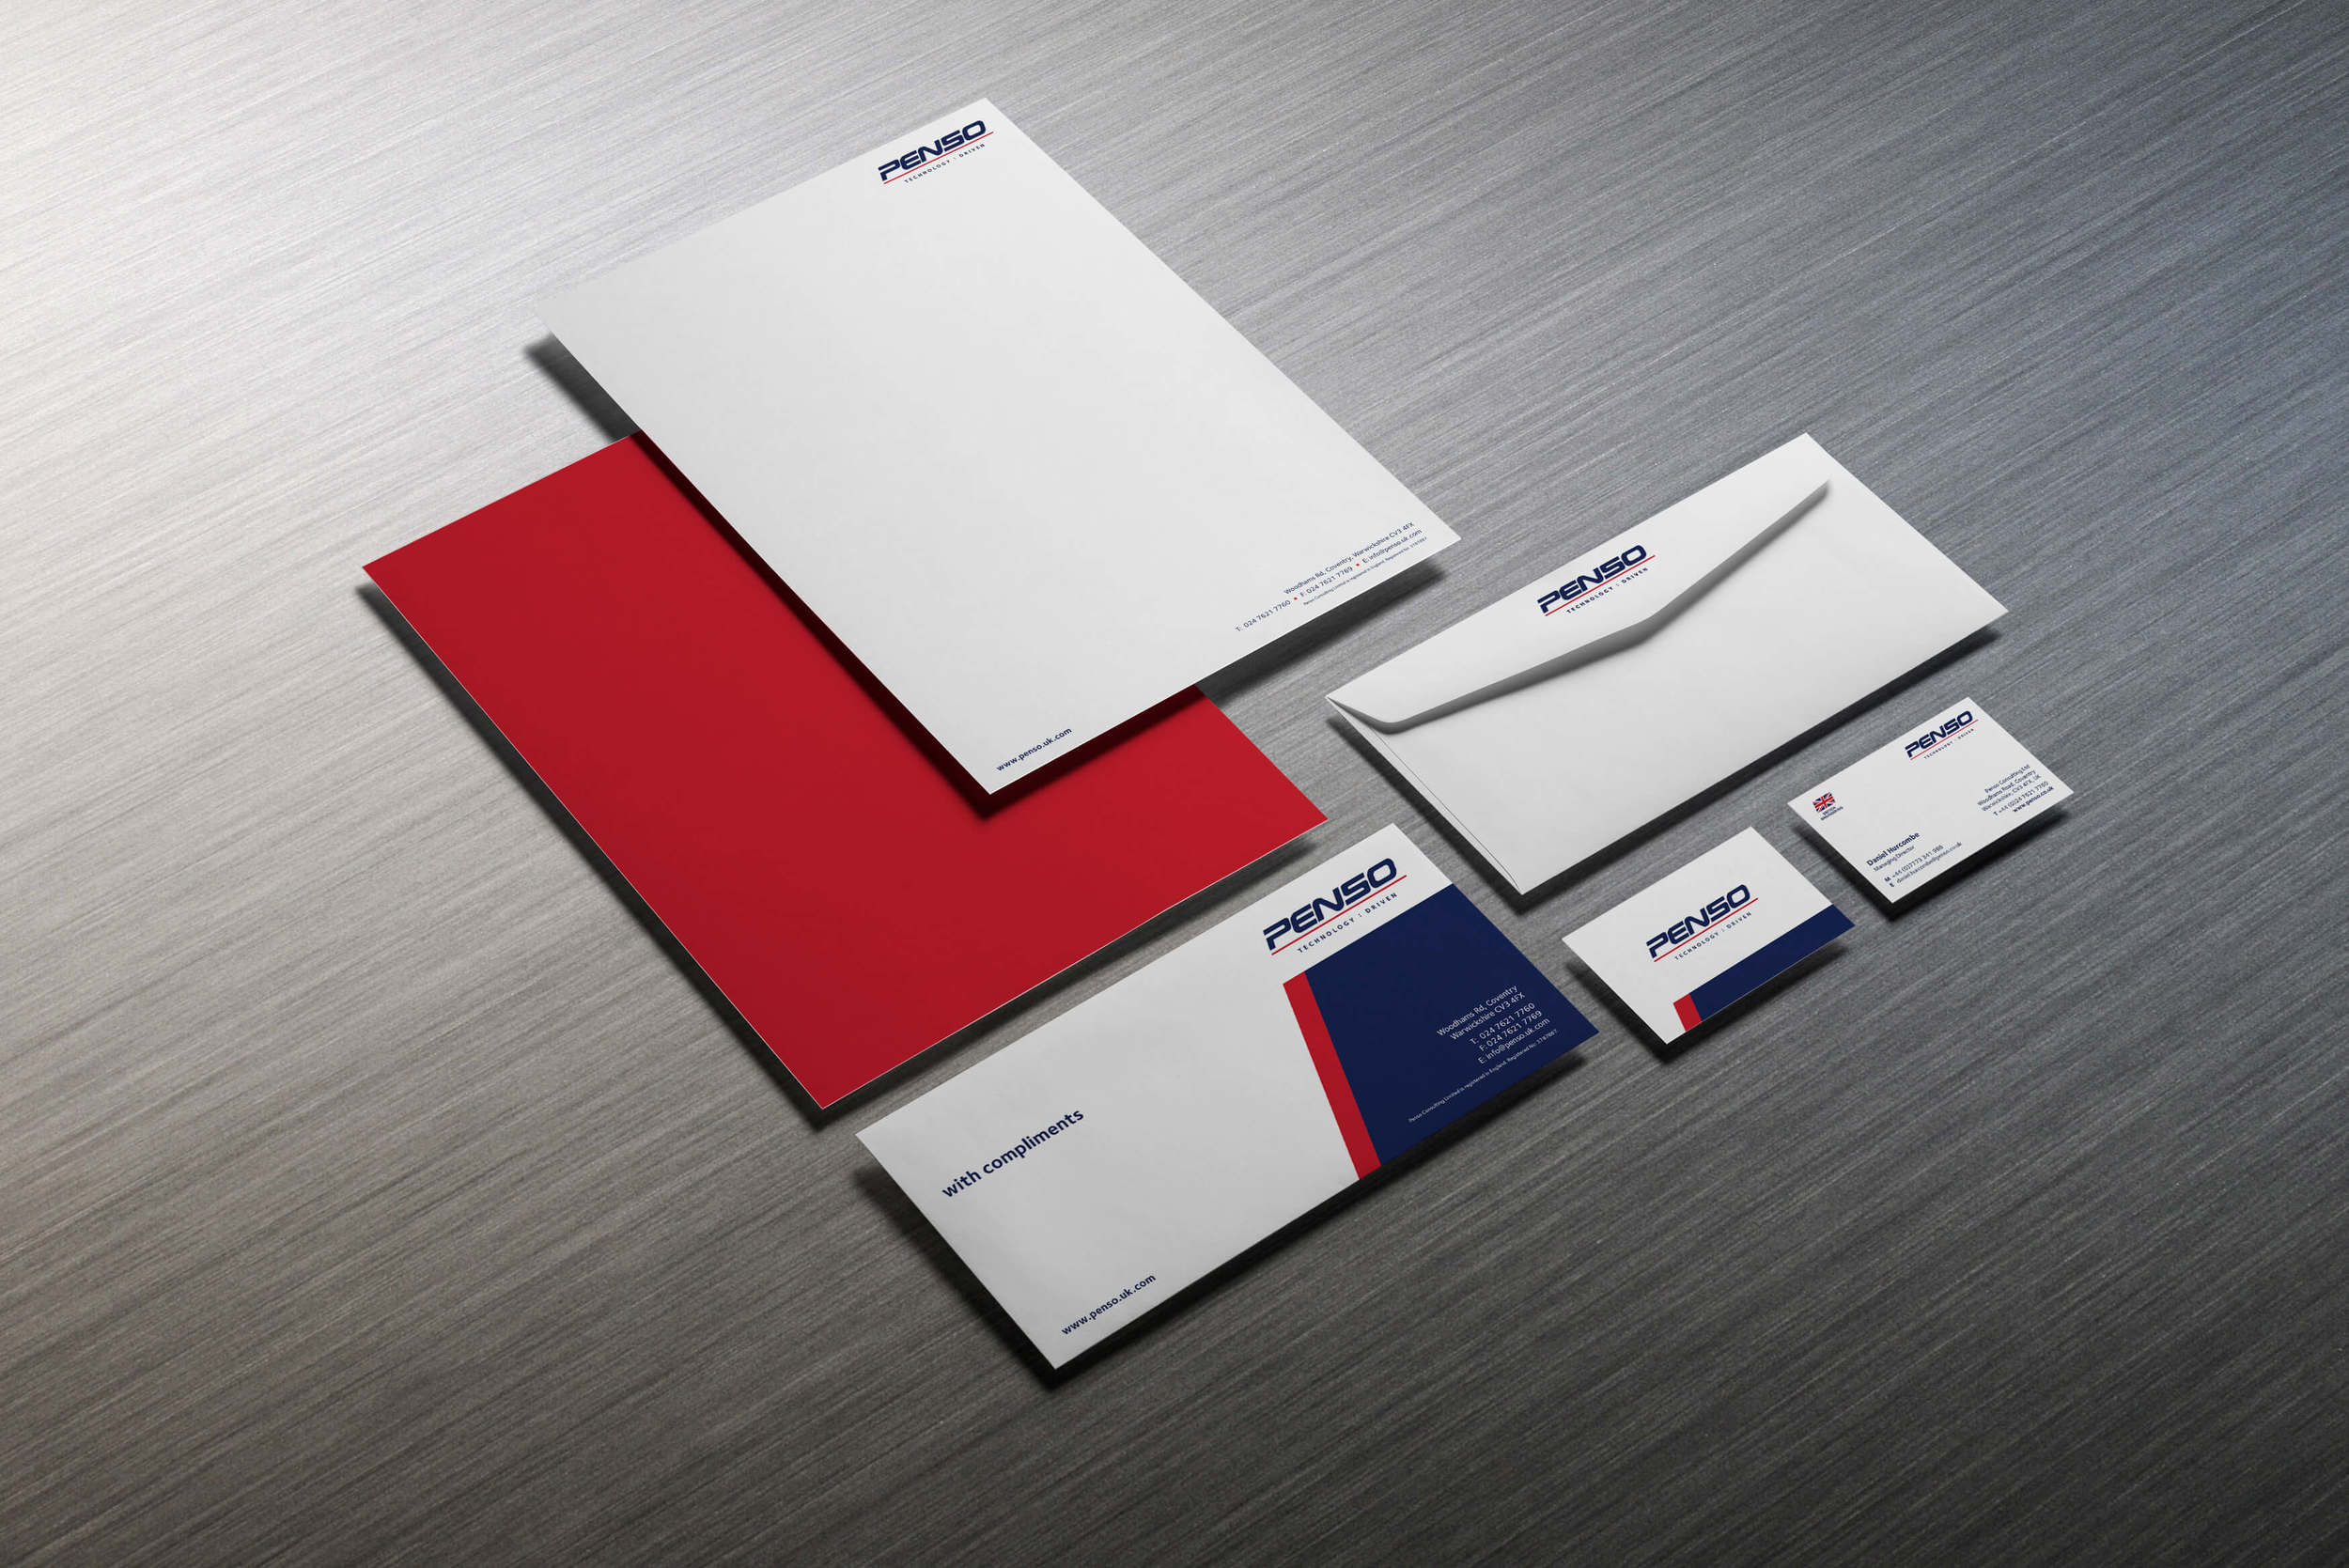 Corporate stationery including letterhead and compliments slip design and buiness cards for Penso, Warwickshire.